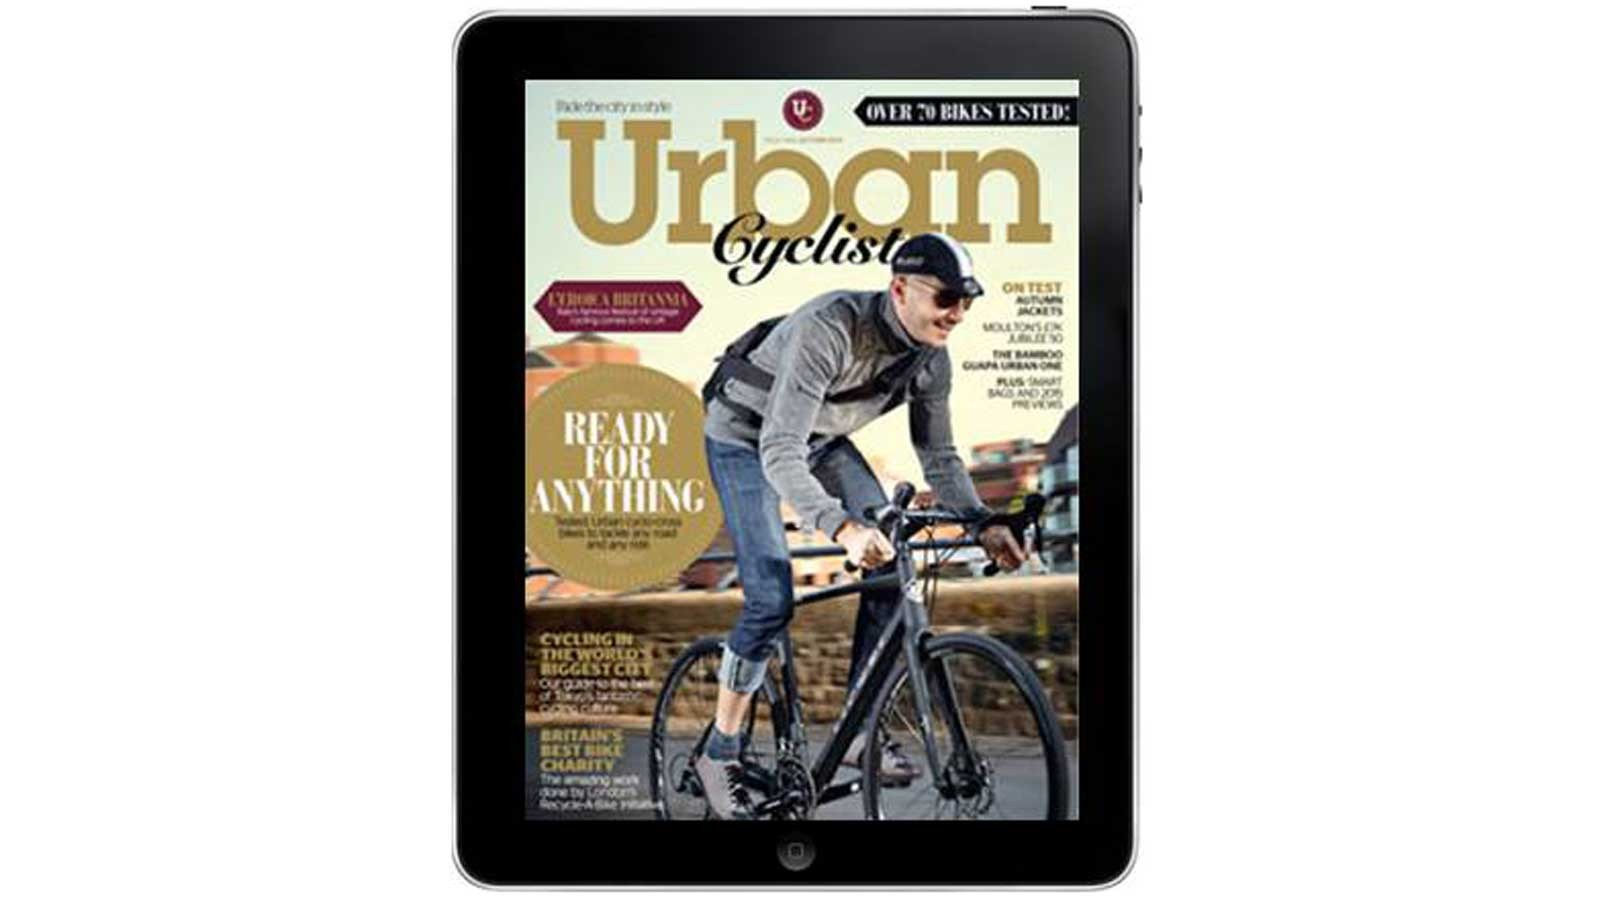 Grab a copy of Urban Cyclist